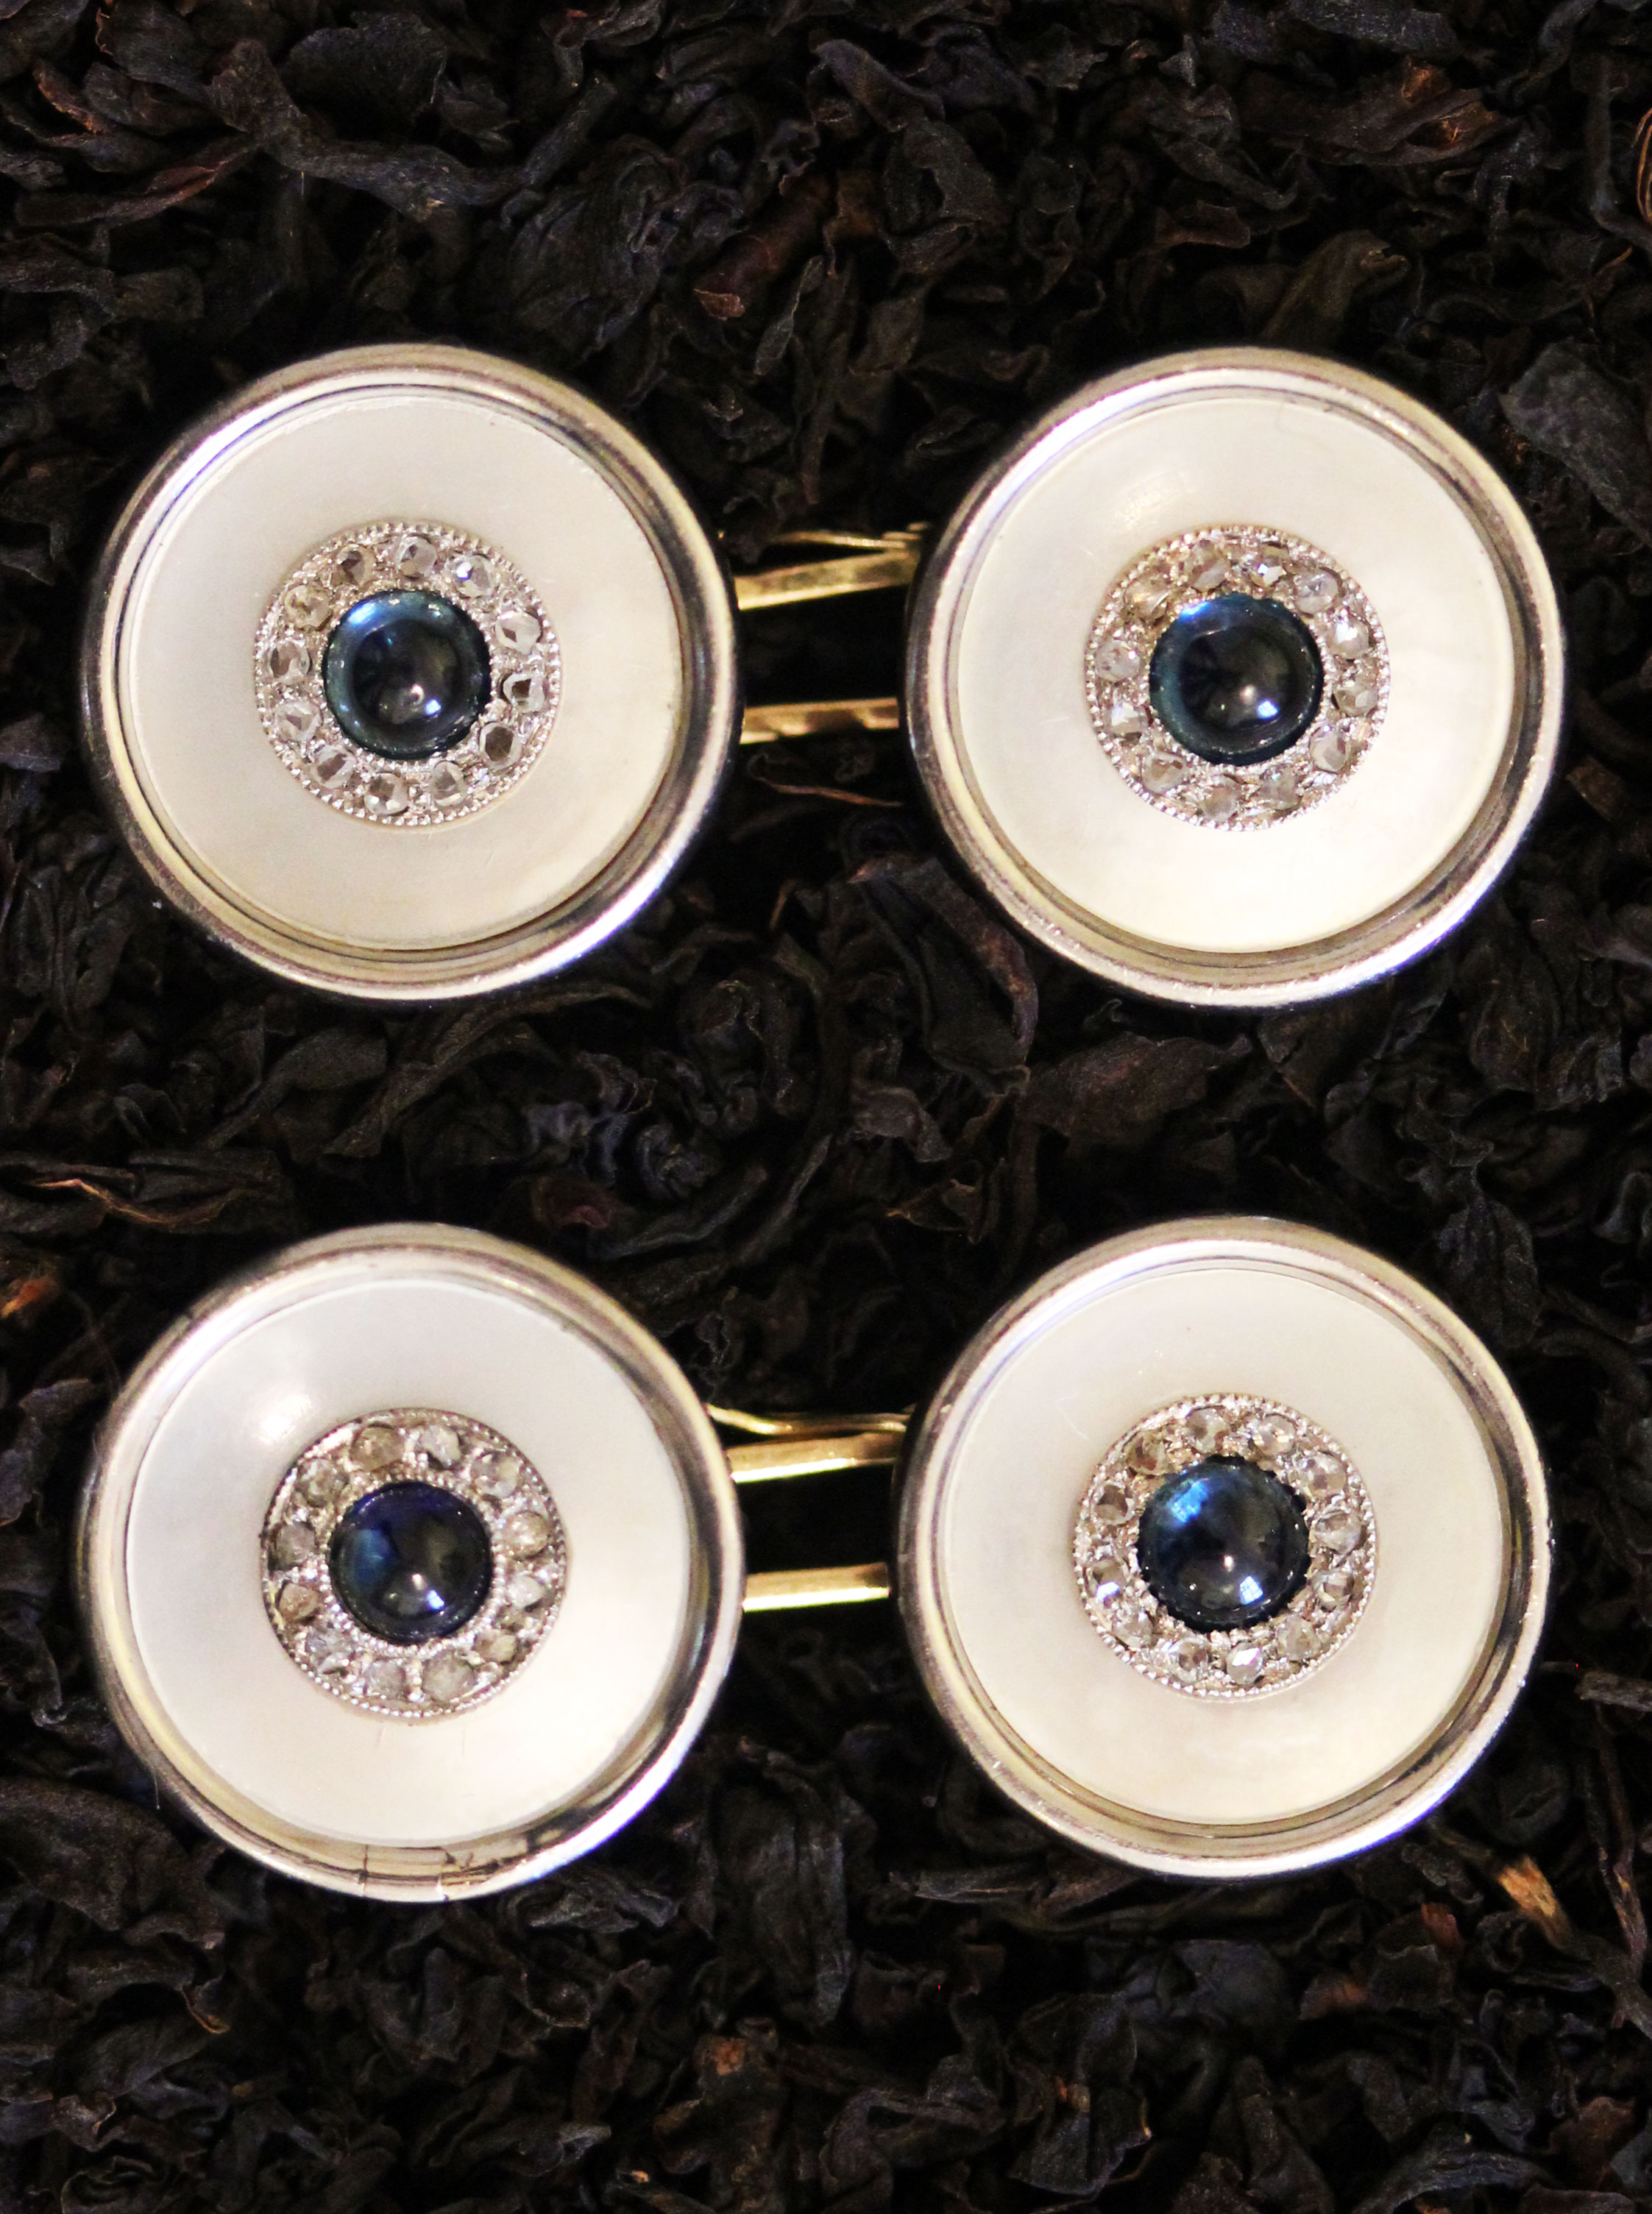 Elegant cufflinks with sapphires & diamonds